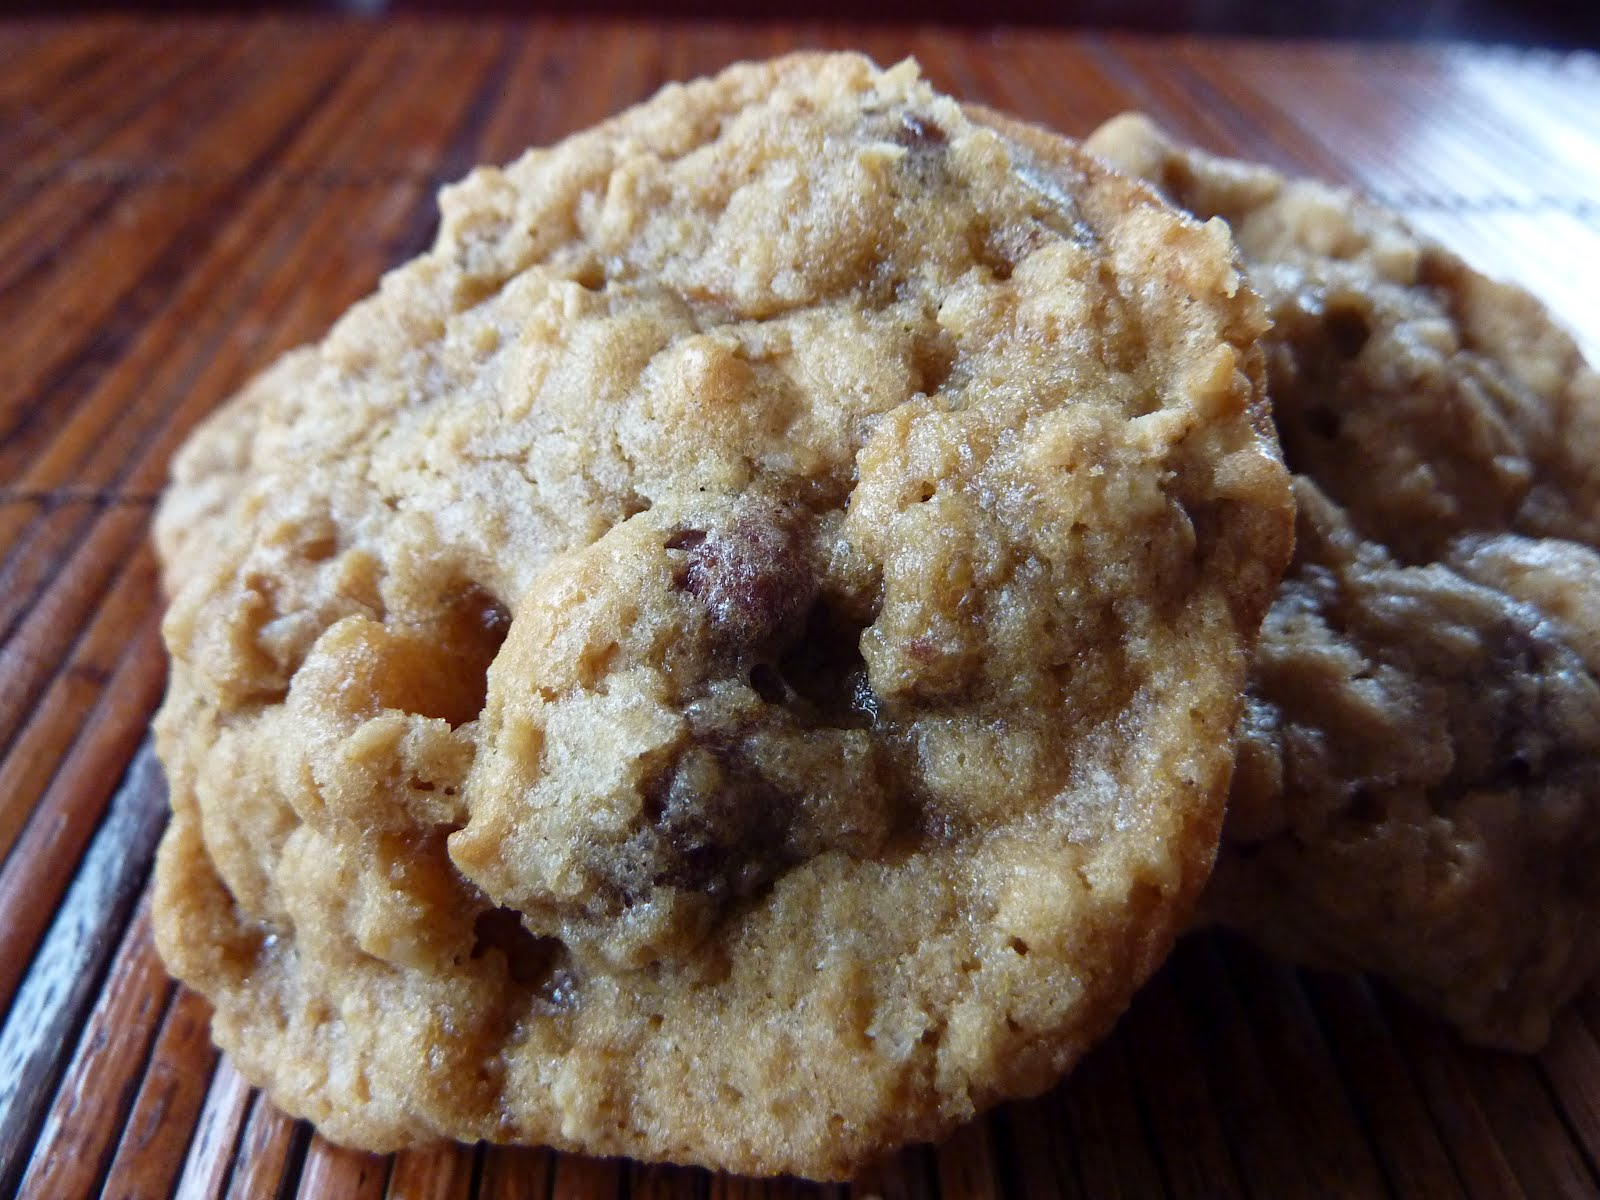 Cookies on Friday: Favorite Oatmeal (Raisinet) Cookies